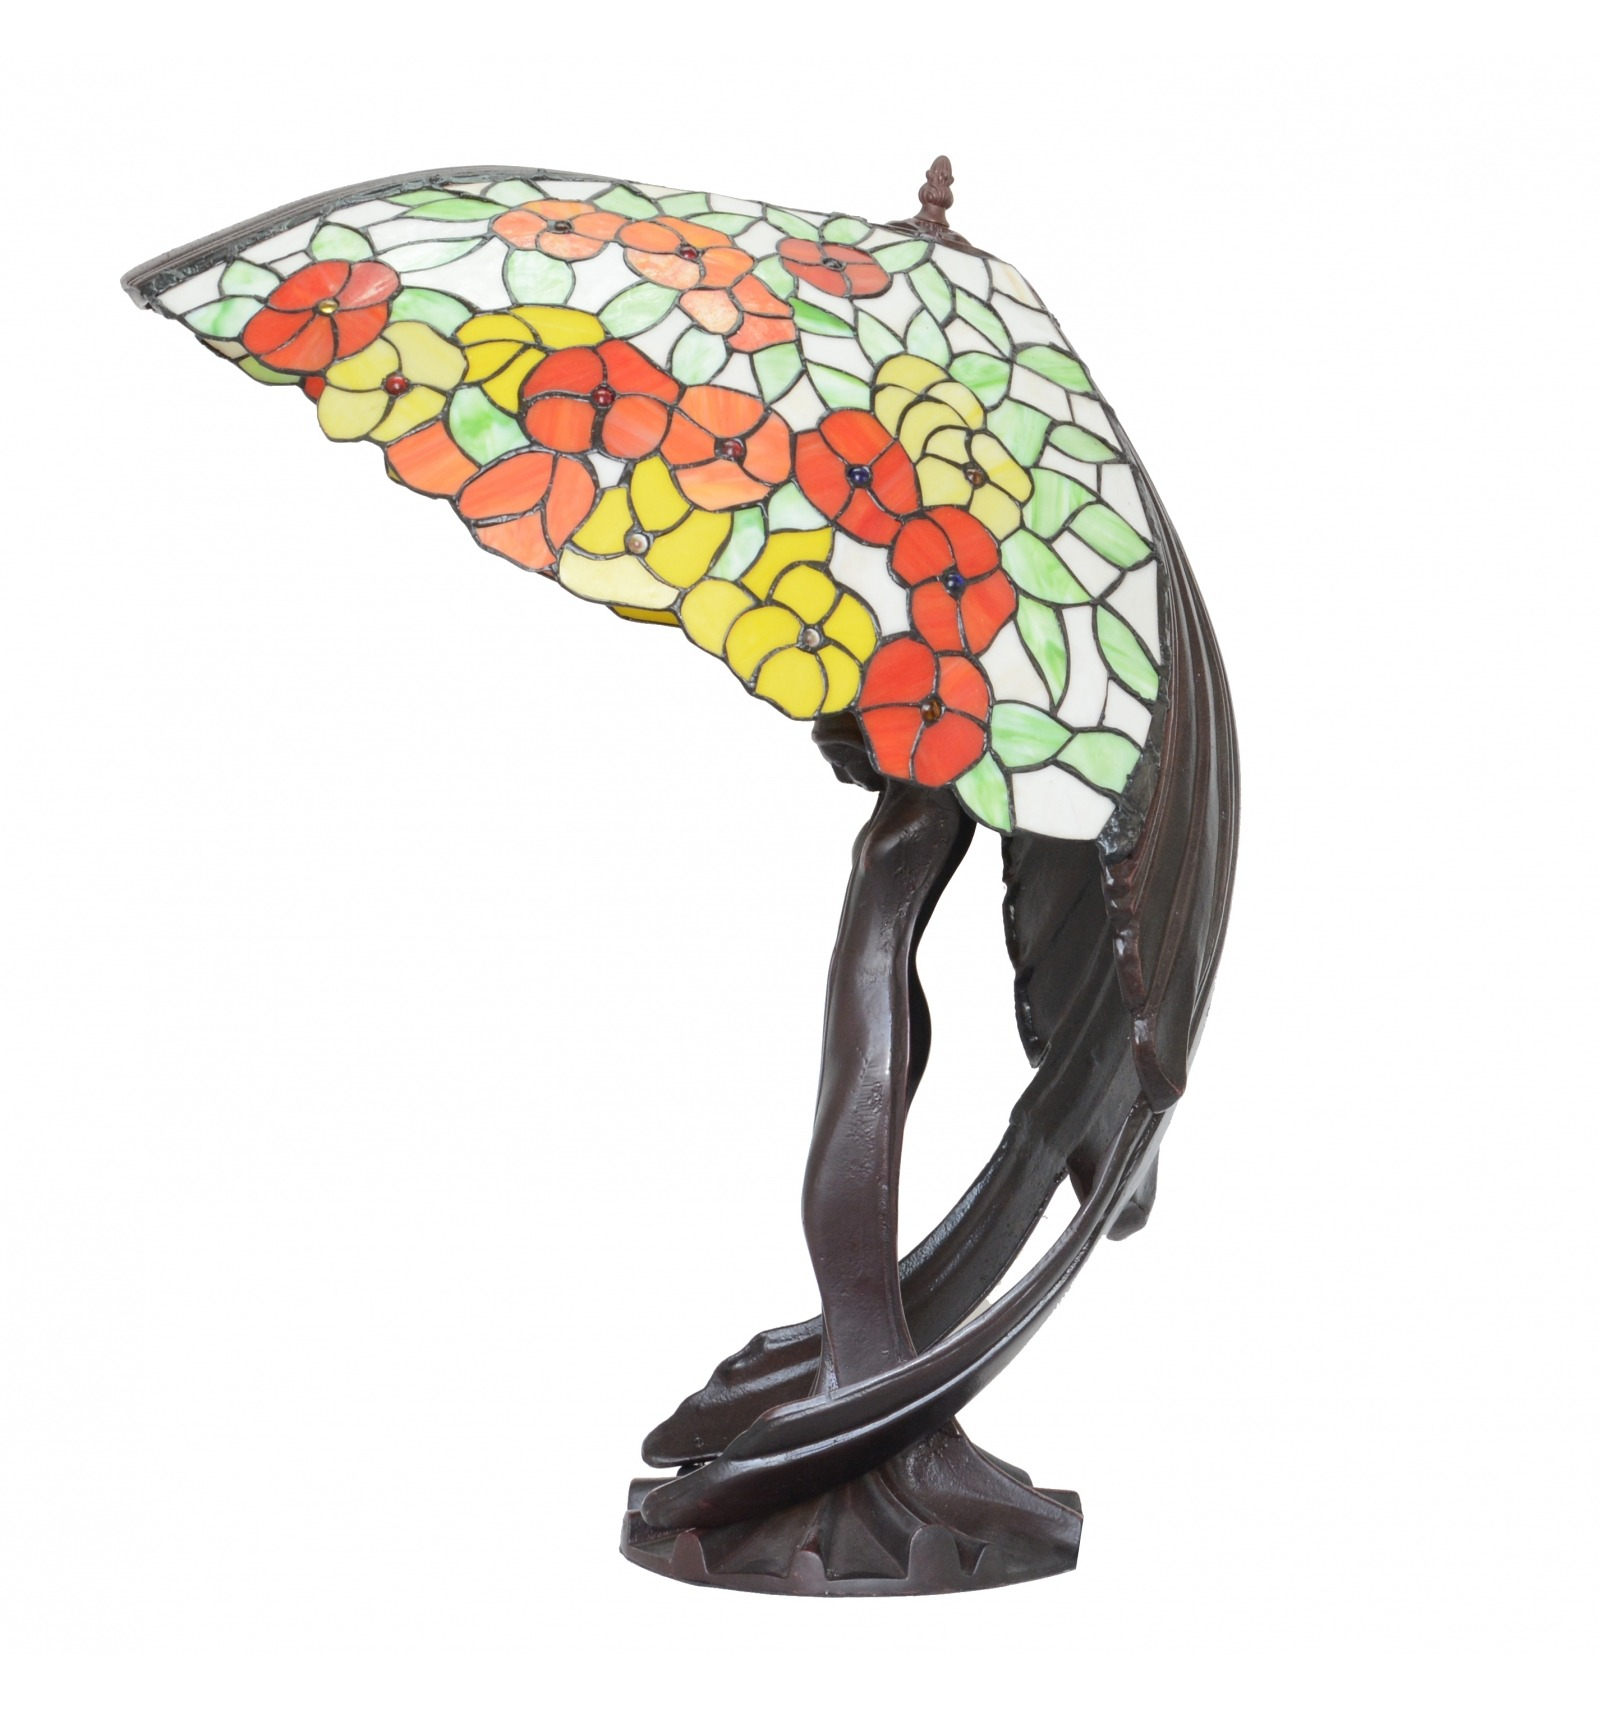 Lampe Fliegende Dame Tiffany Replik Des Originals Art Deco Lampe